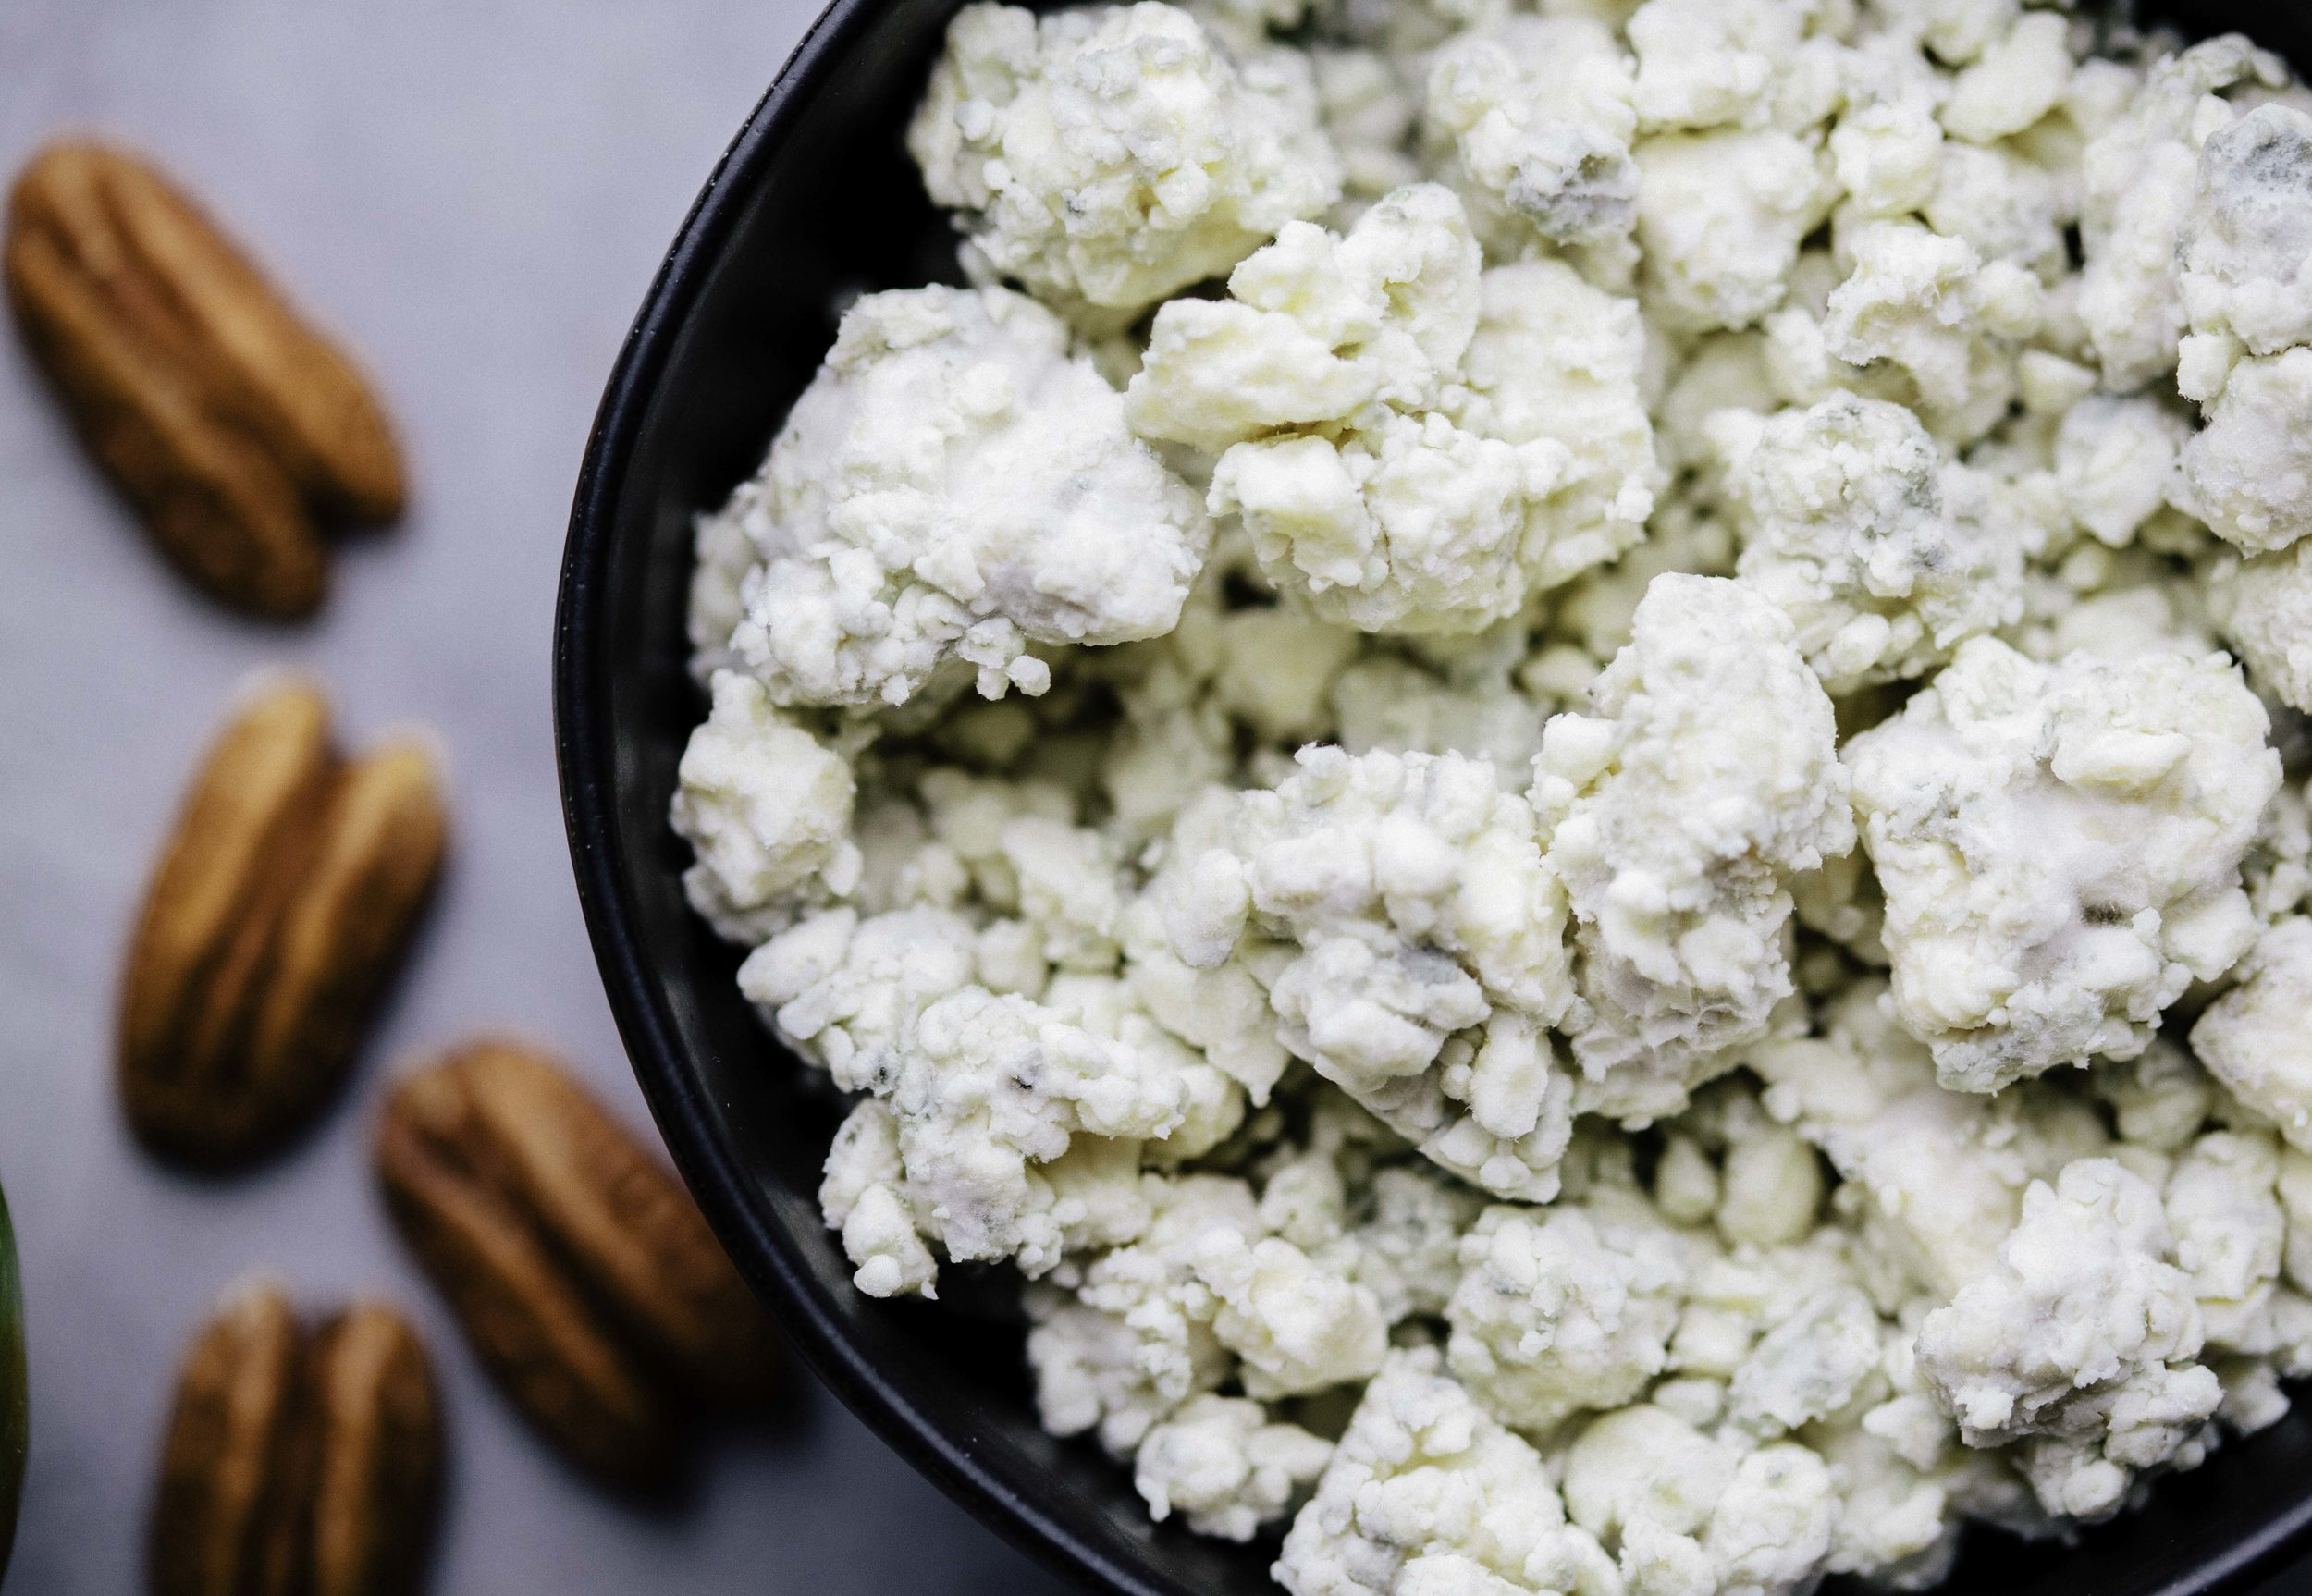 Funky blue cheese is equally loved and loathed. It's strong, pungent flavor definitely isn't for everyone! If you're not a fan of the stinky cheeses, try this salad with a mild, salty feta cheese instead.